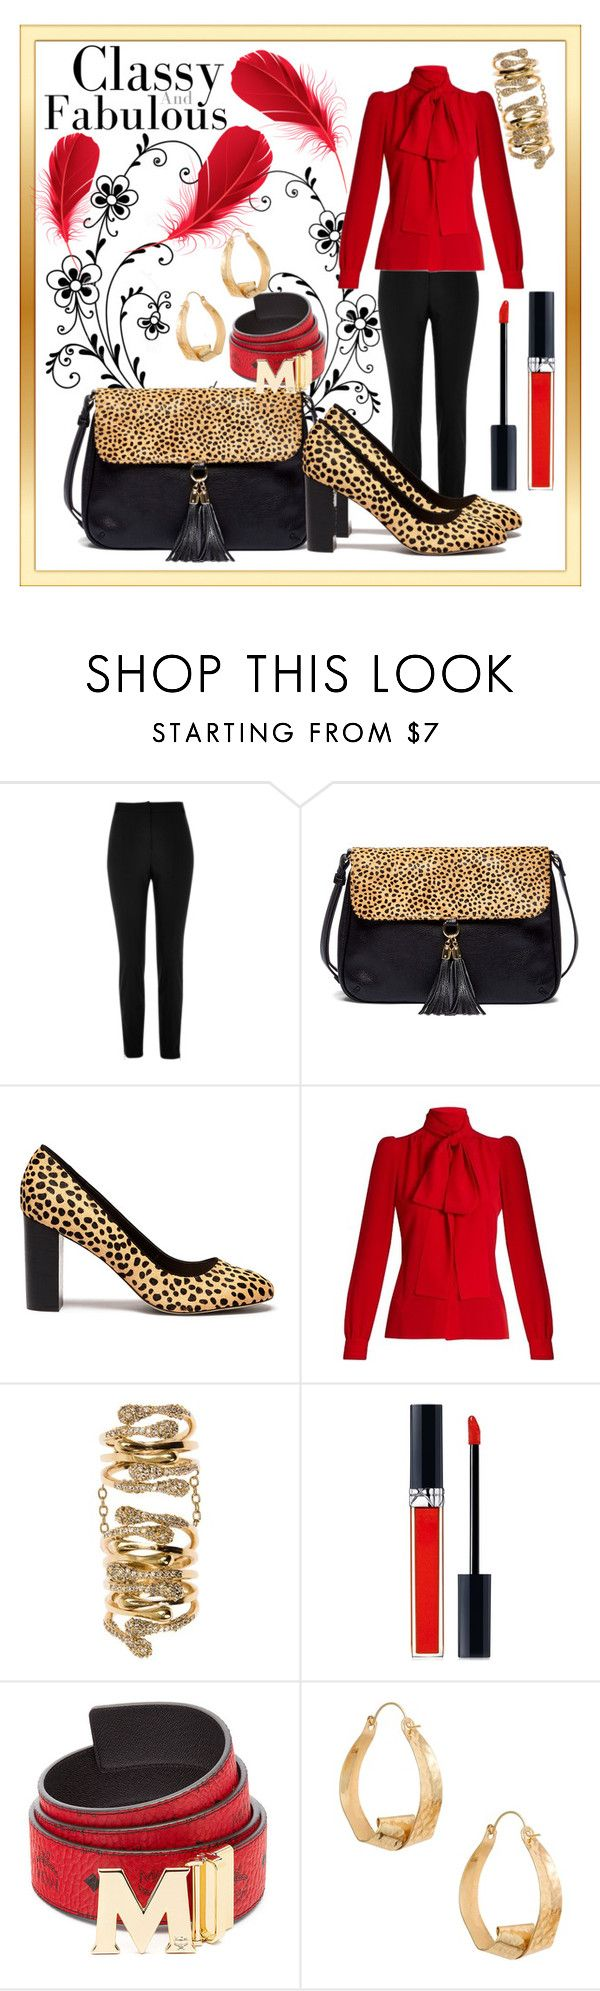 """""""Classy"""" by summer-marin ❤ liked on Polyvore featuring River Island, Sole Society, Sonia Rykiel, Joanna Laura Constantine, Christian Dior and MCM"""